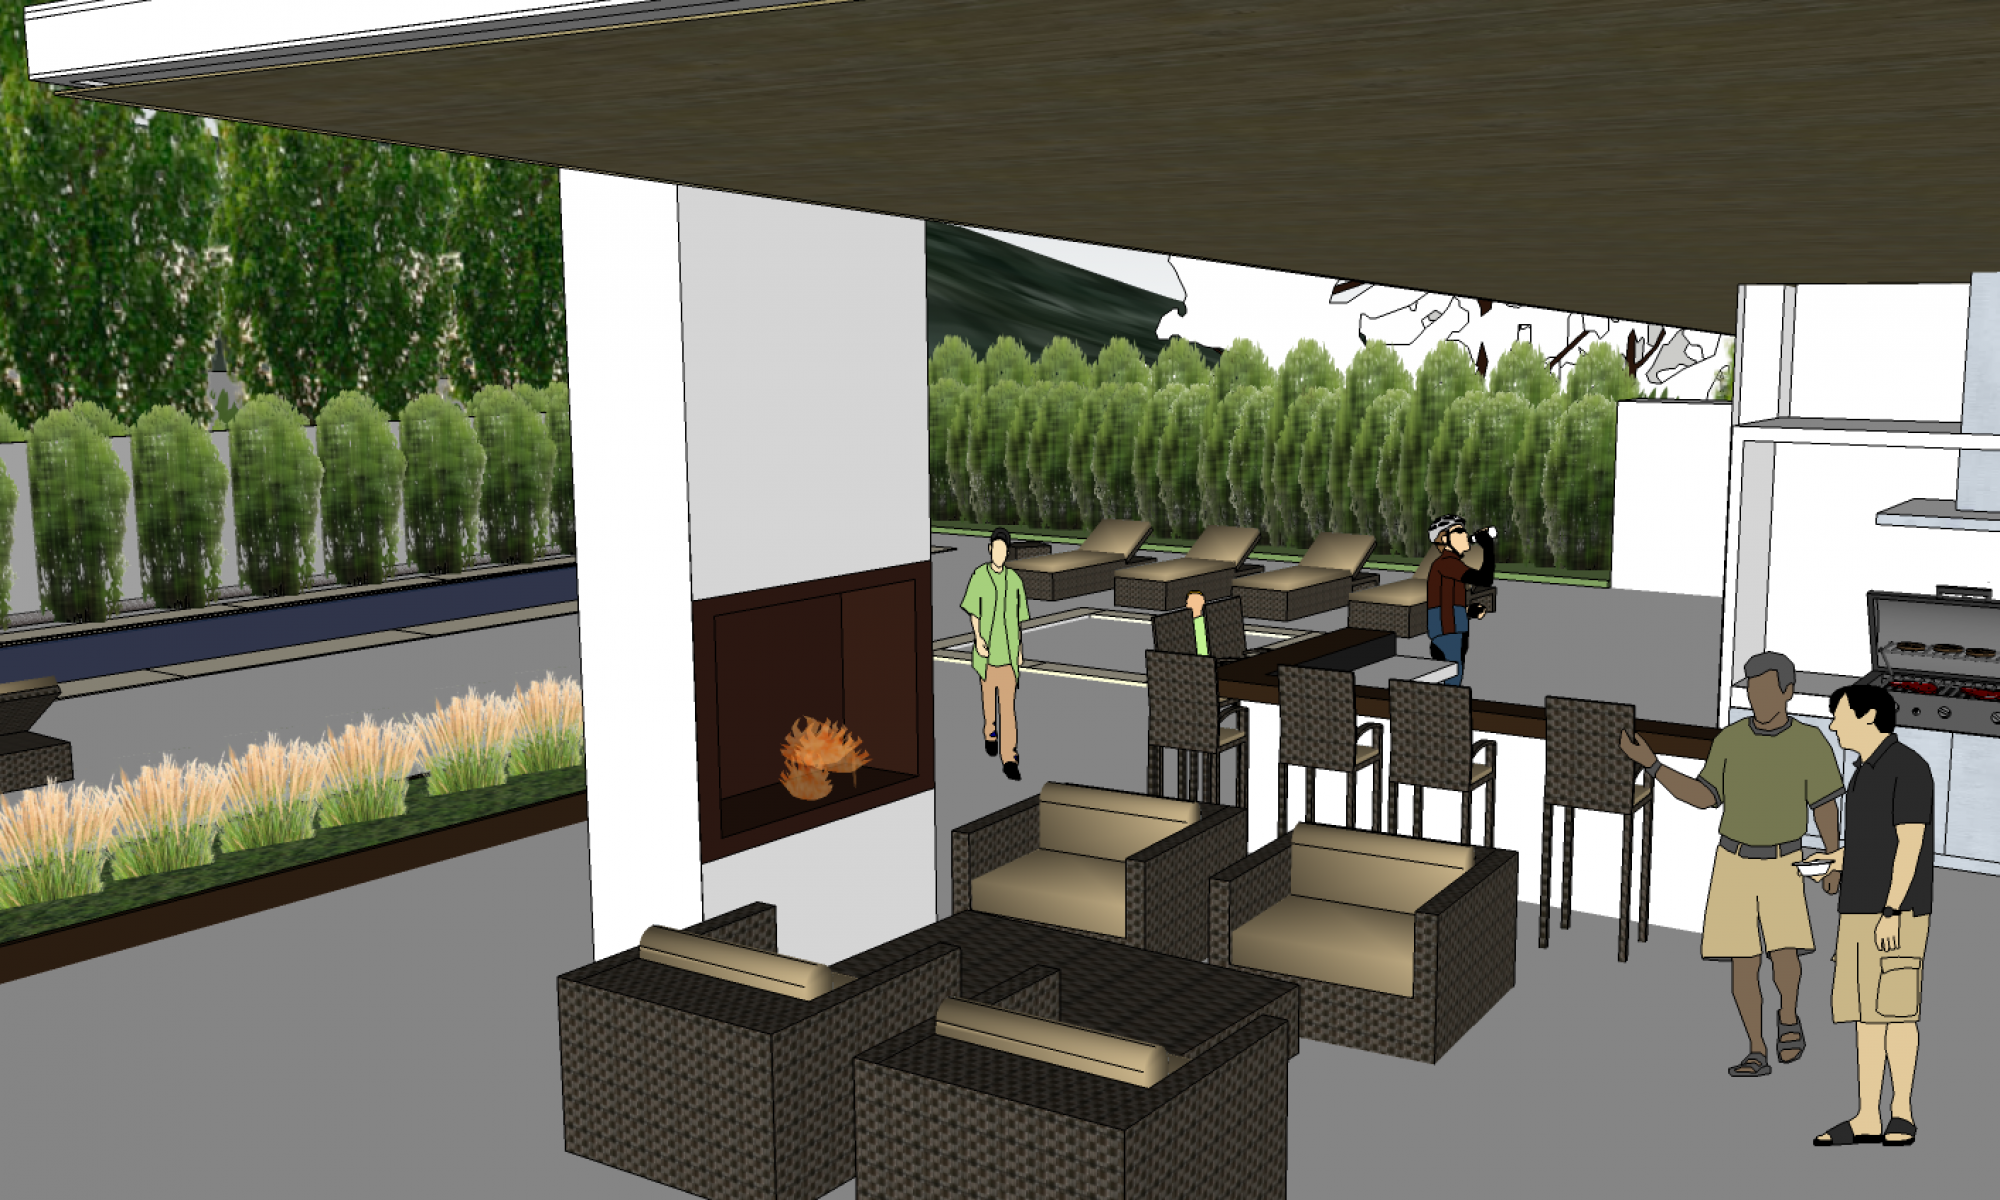 cropped-3d-model-sketchup-north1.png